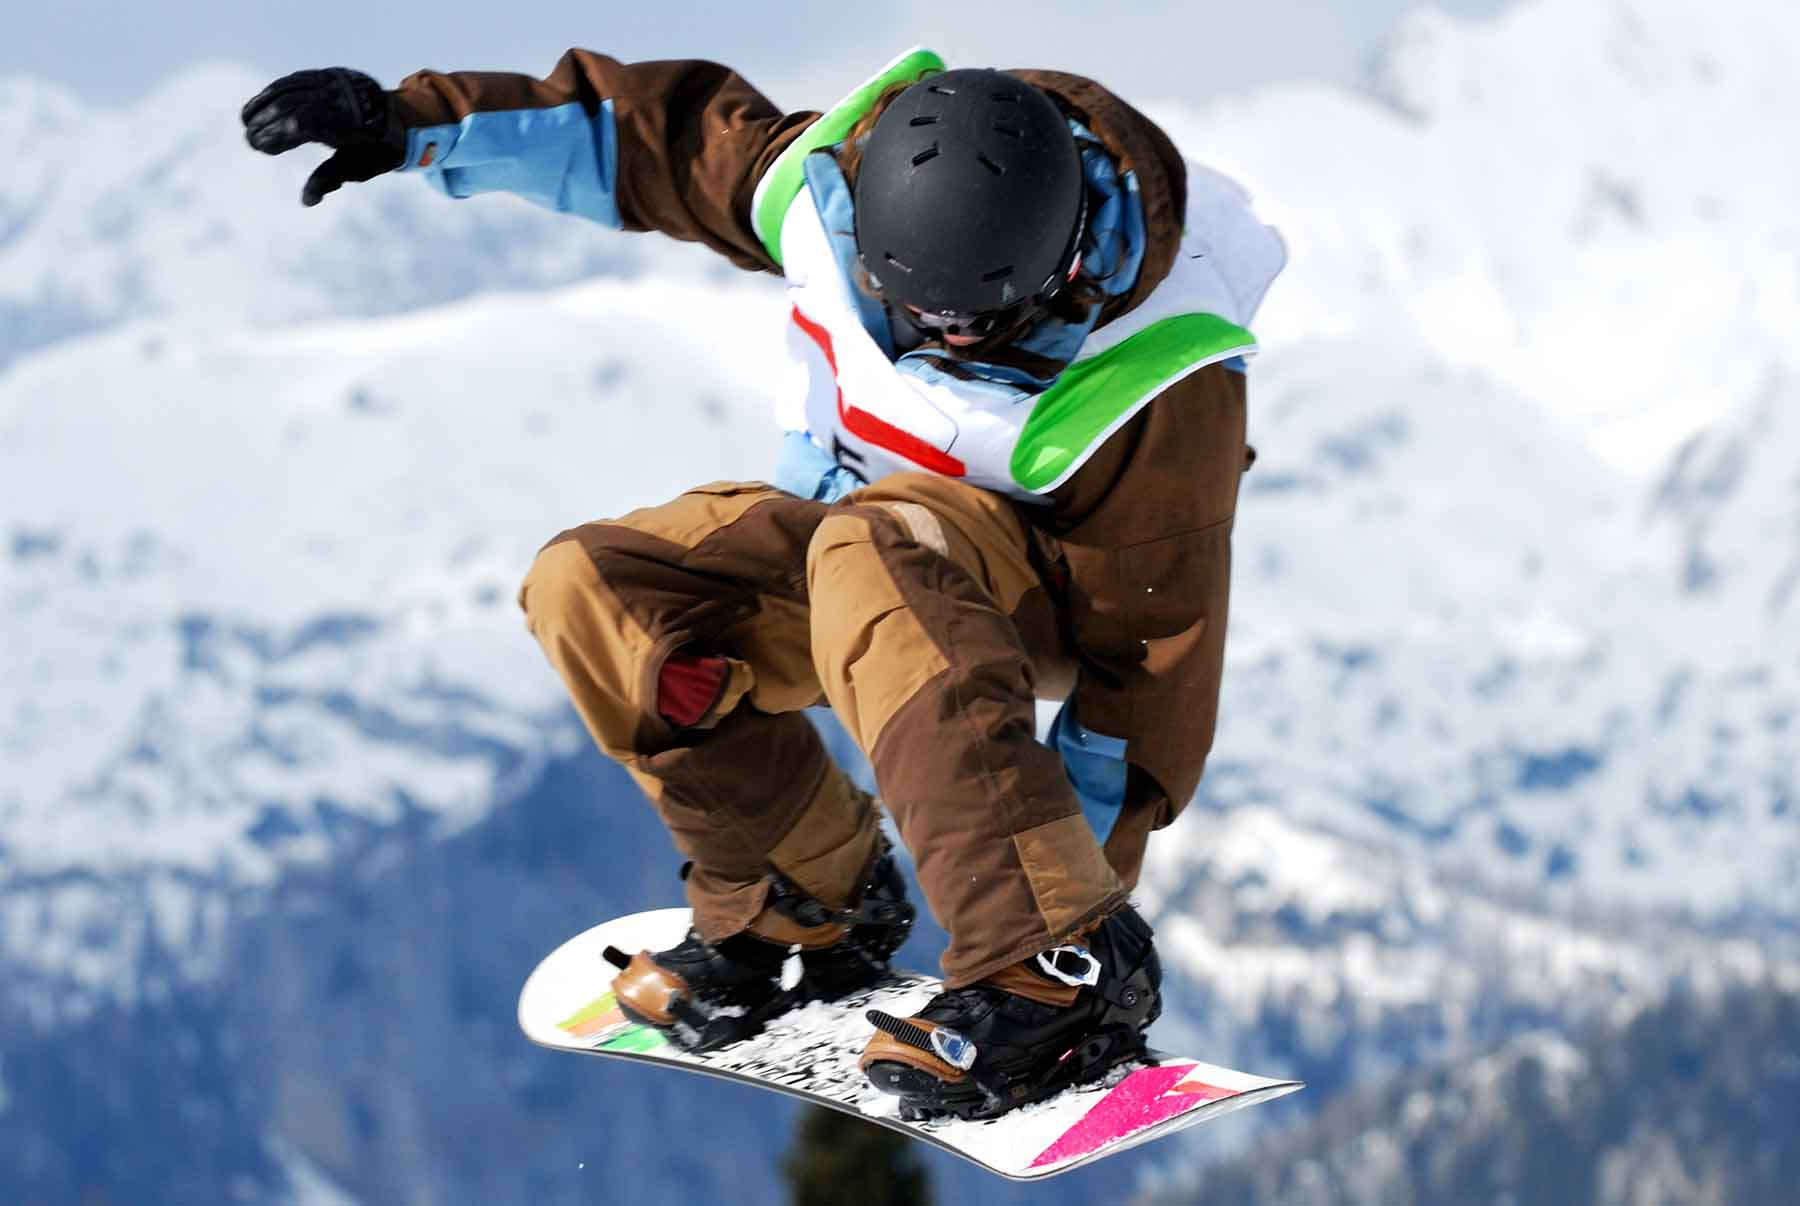 Snowboarder competing in the Grand Prix in Mammoth